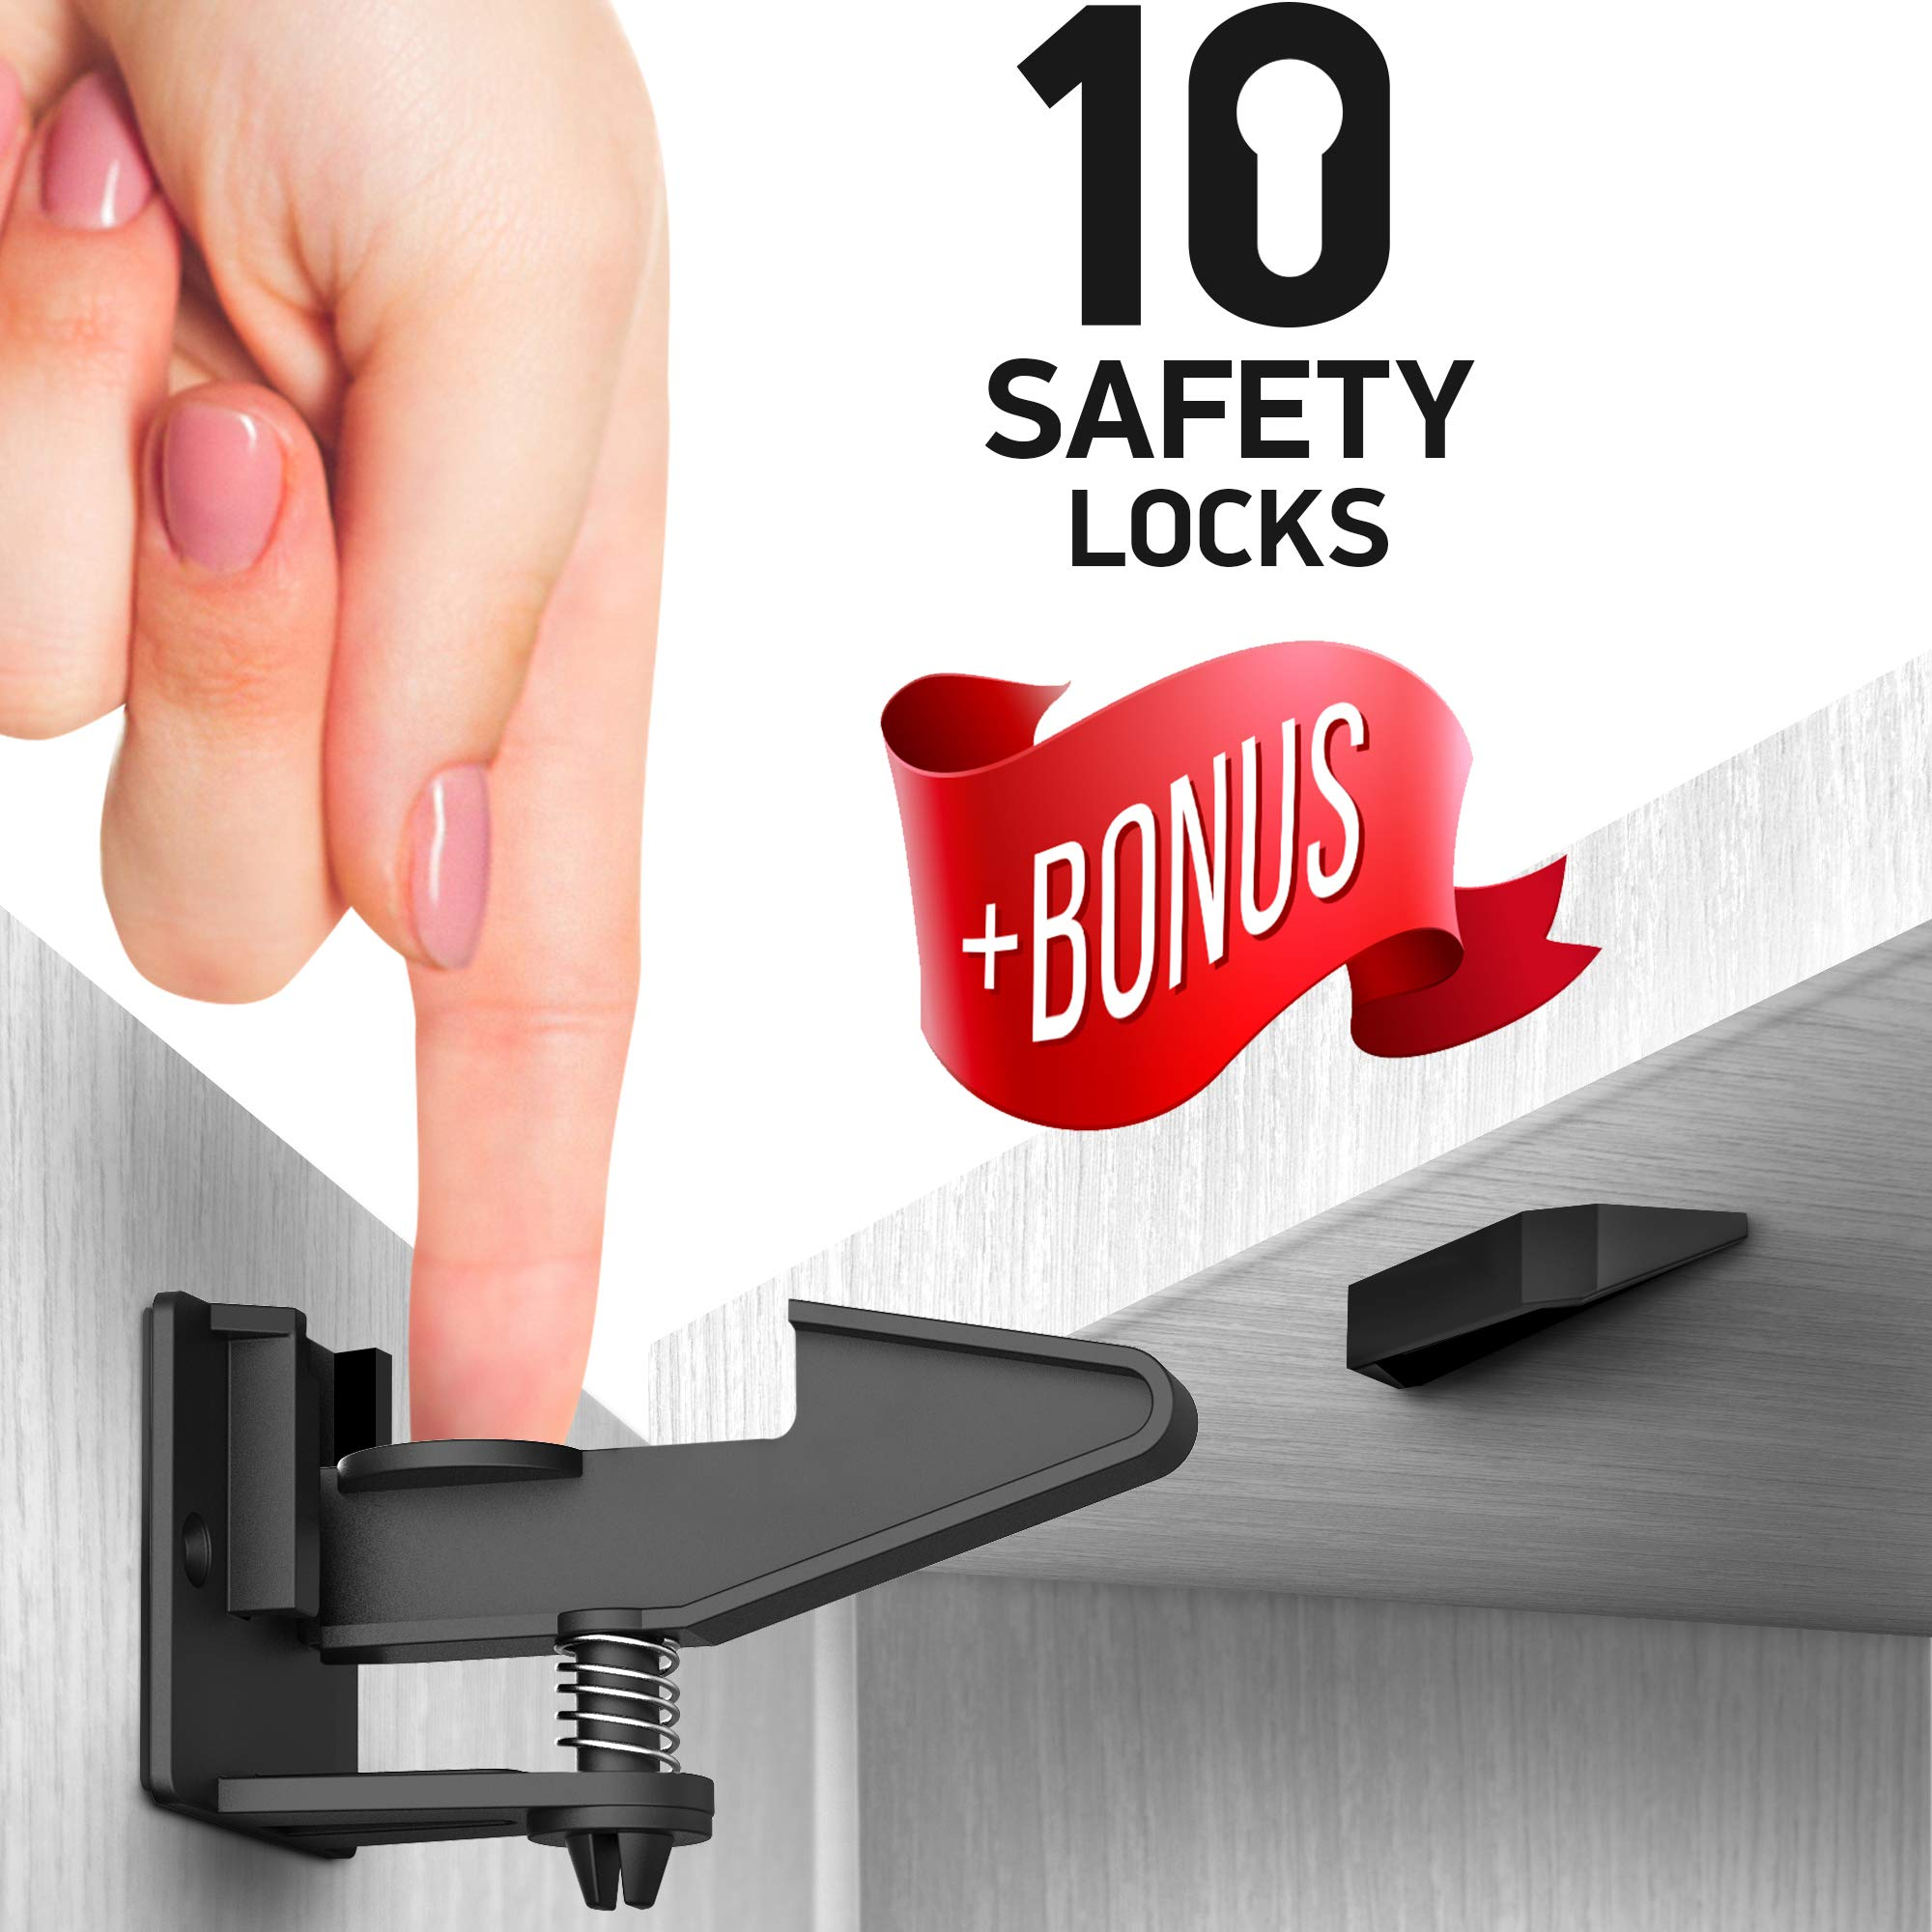 Kitchen Cabinet Locks Child Safety - Adhesive Child Proof Cabinet Locks - Baby Safety Cabinet Locks - Quick and Easy Child Locks for Cabinets and Drawers - BONUS Corner & Door Guards, Socket Covers